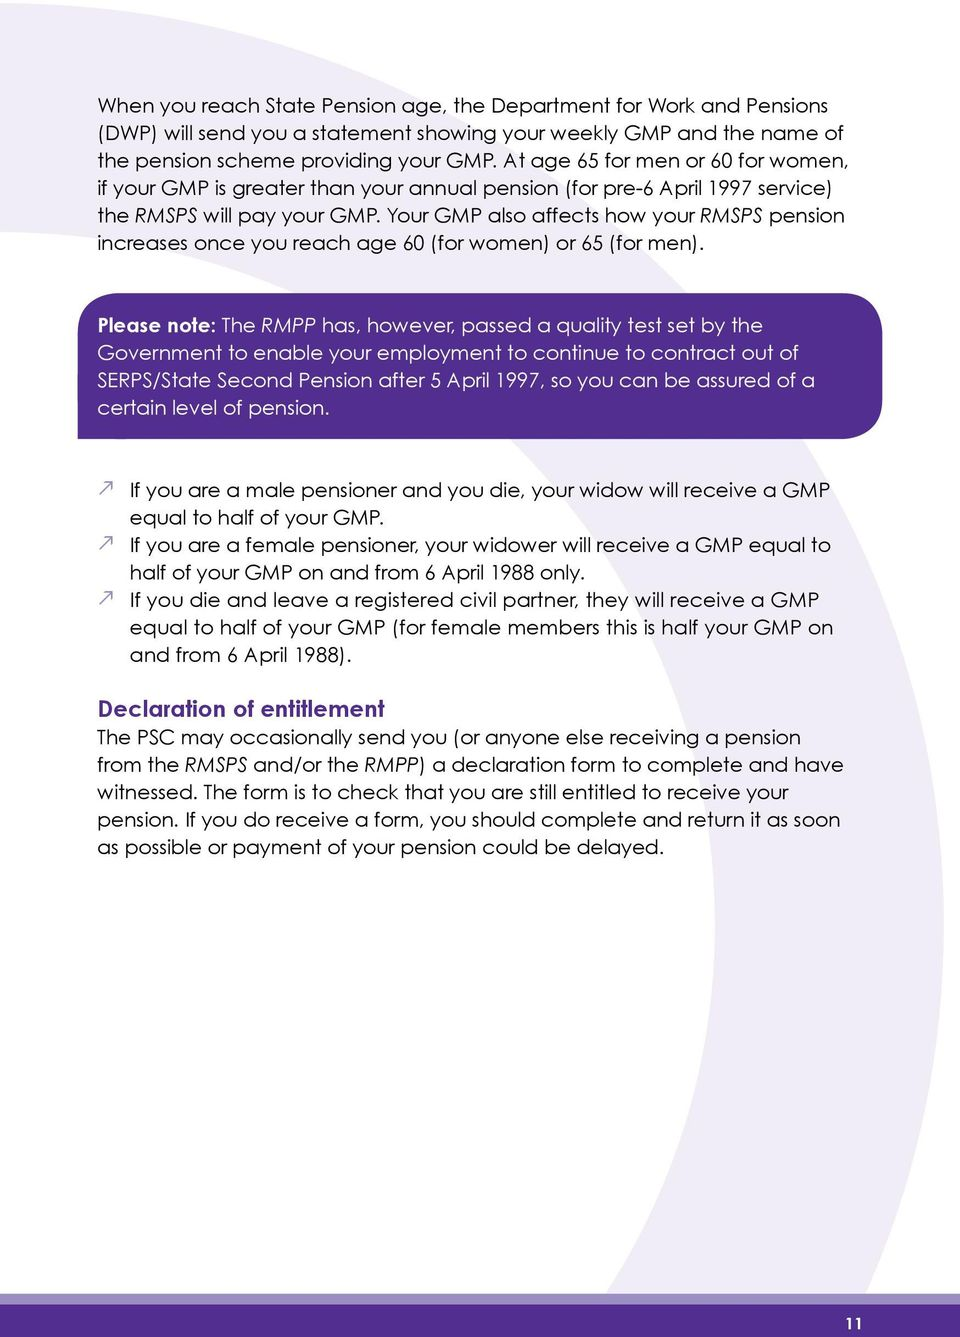 Your GMP also affects how your RMSPS pension increases once you reach age 60 (for women) or 65 (for men).